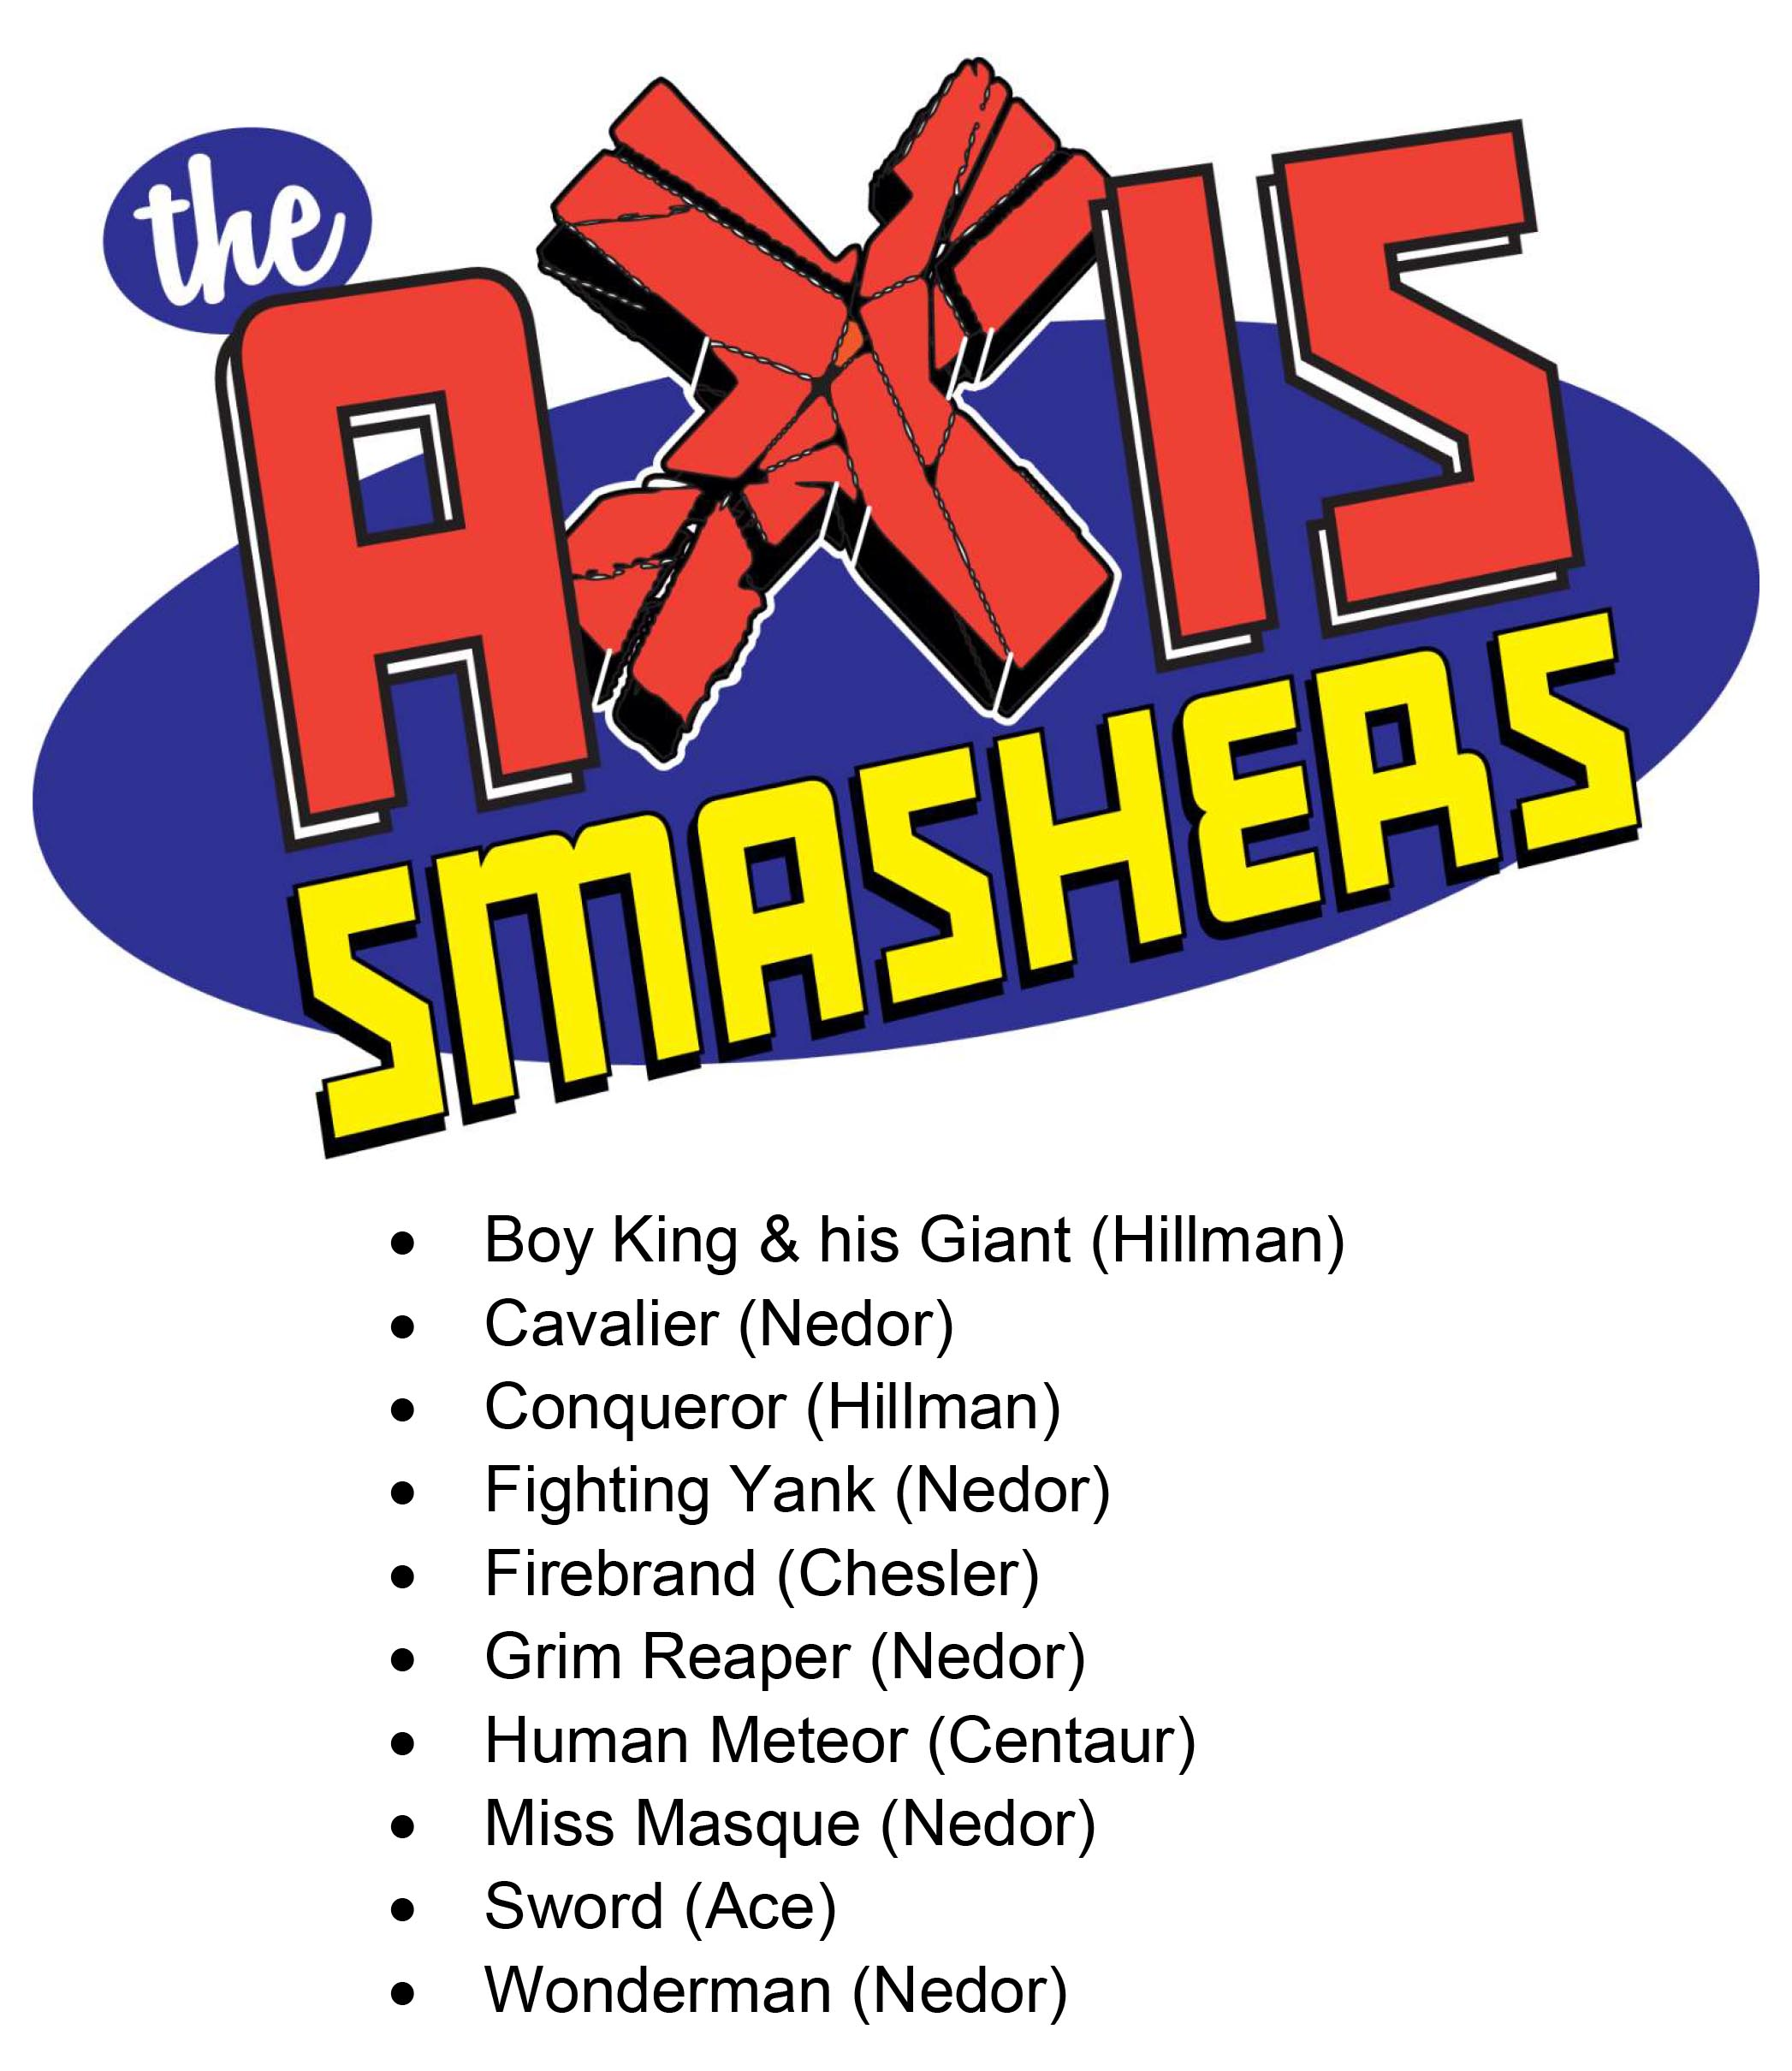 The AXIS Smashers